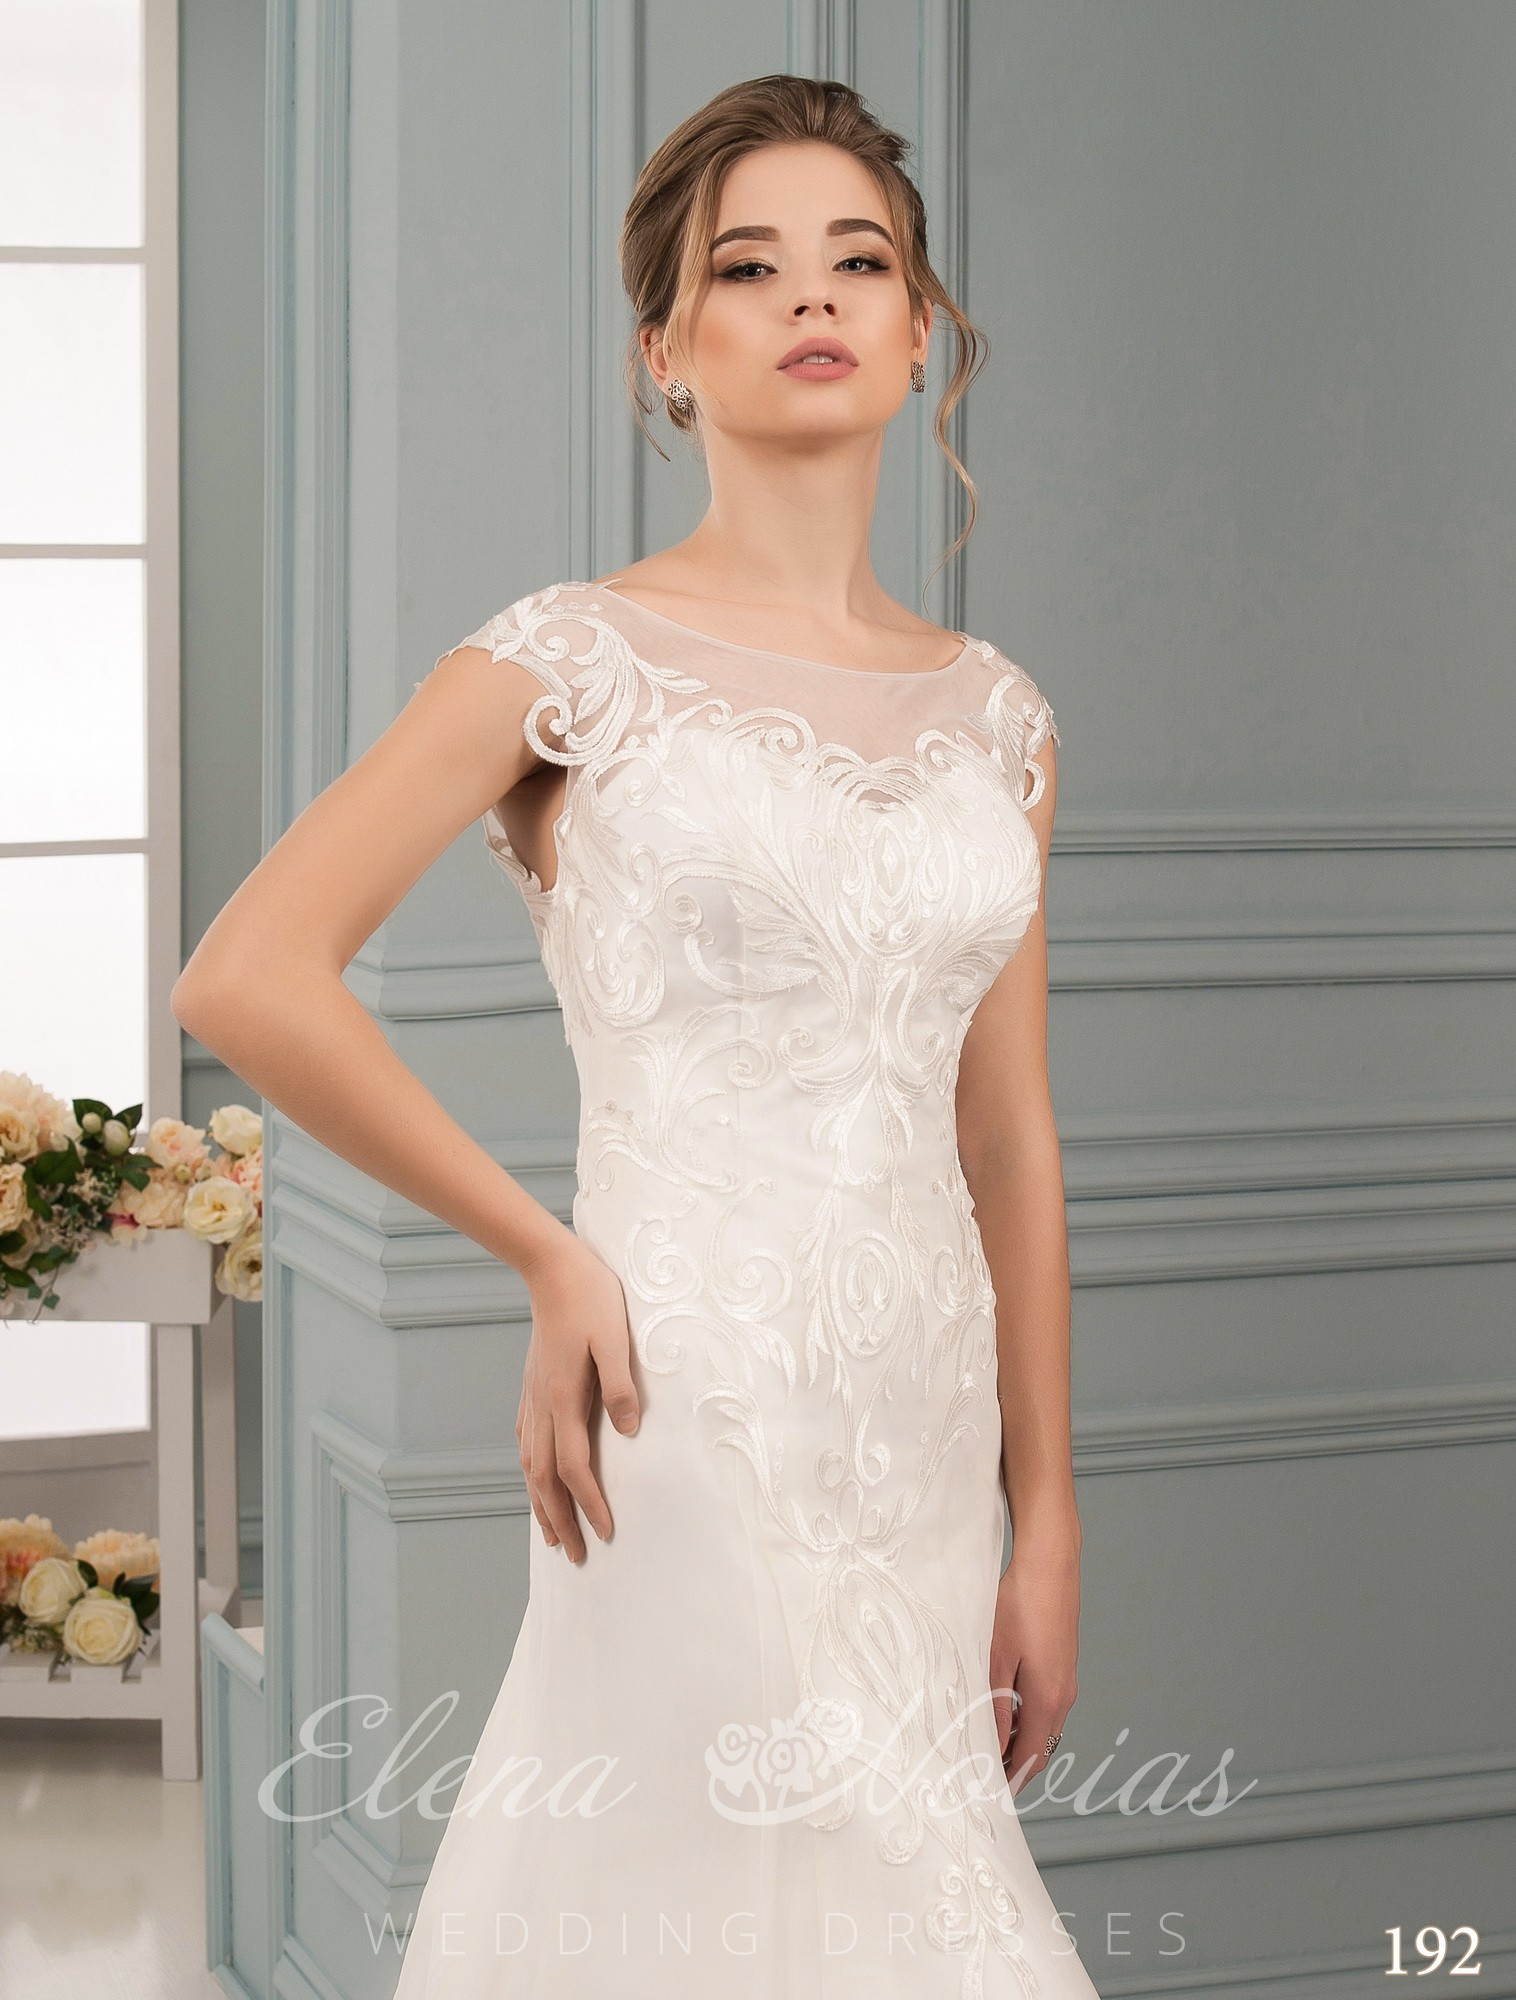 Wedding dress wholesale 192